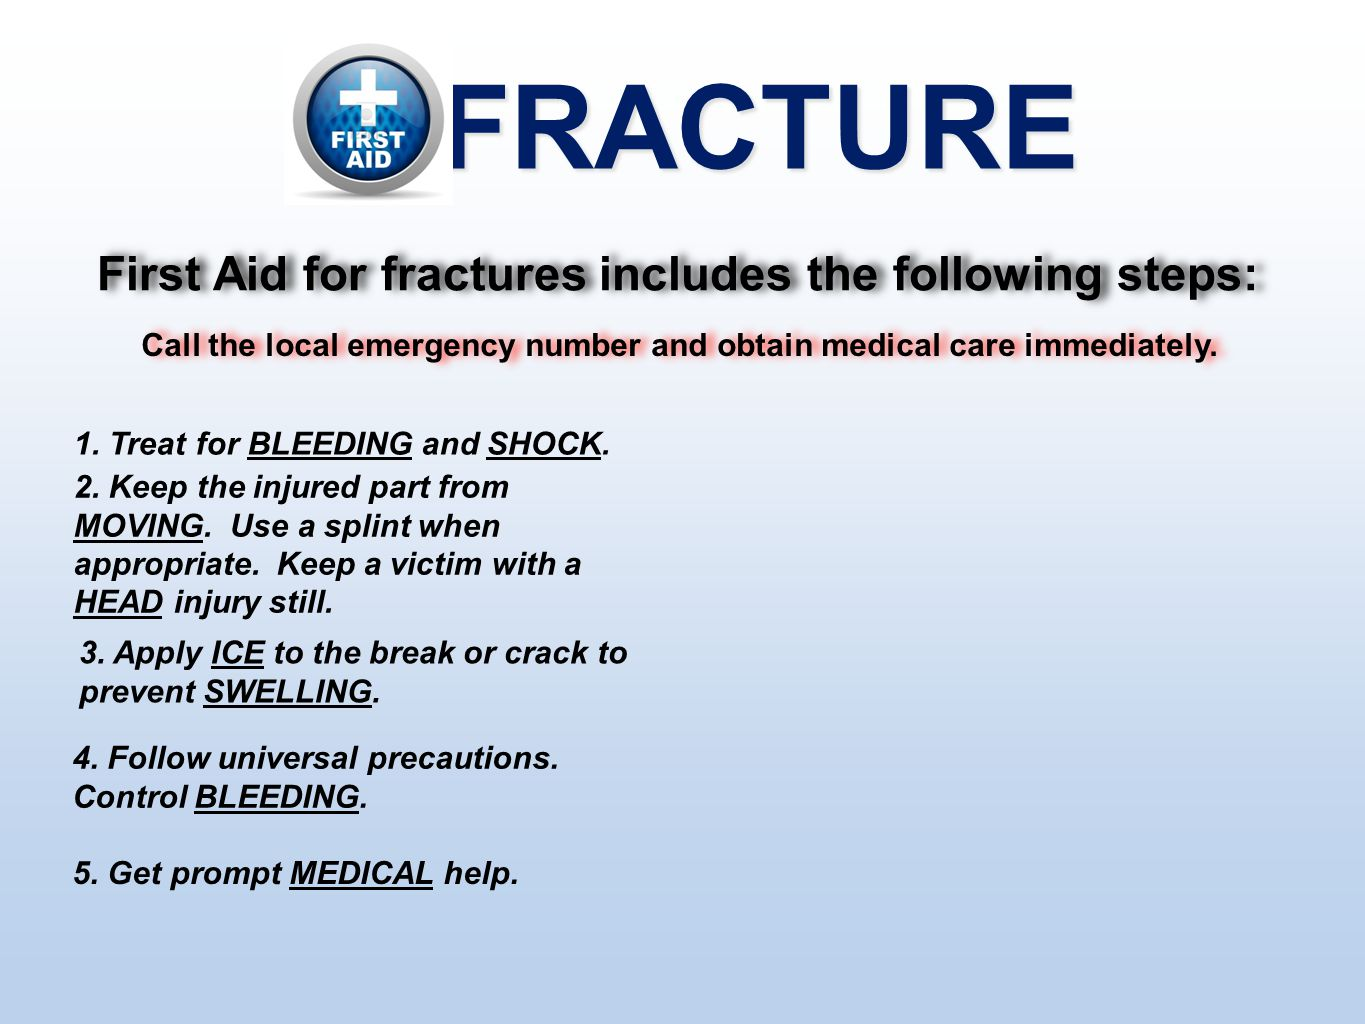 FRACTURE First Aid for fractures includes the following steps: